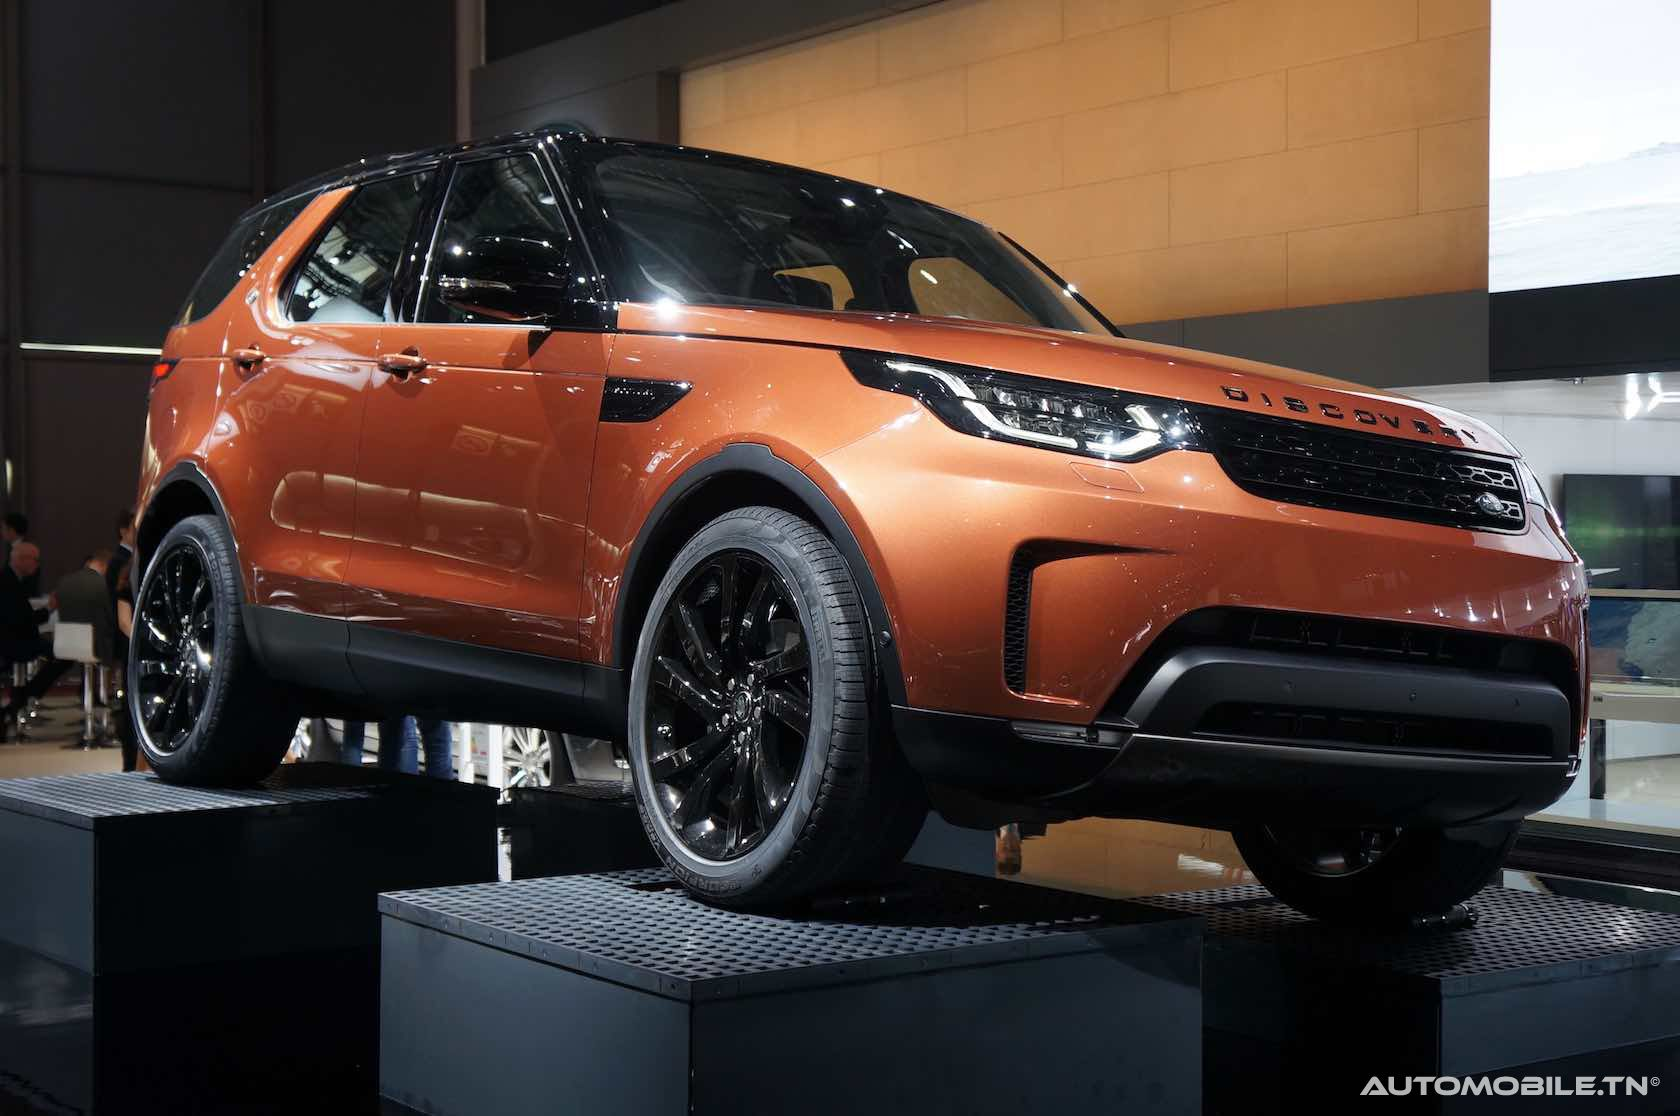 mondial 2016 mondial de paris 2016 land rover discovery. Black Bedroom Furniture Sets. Home Design Ideas